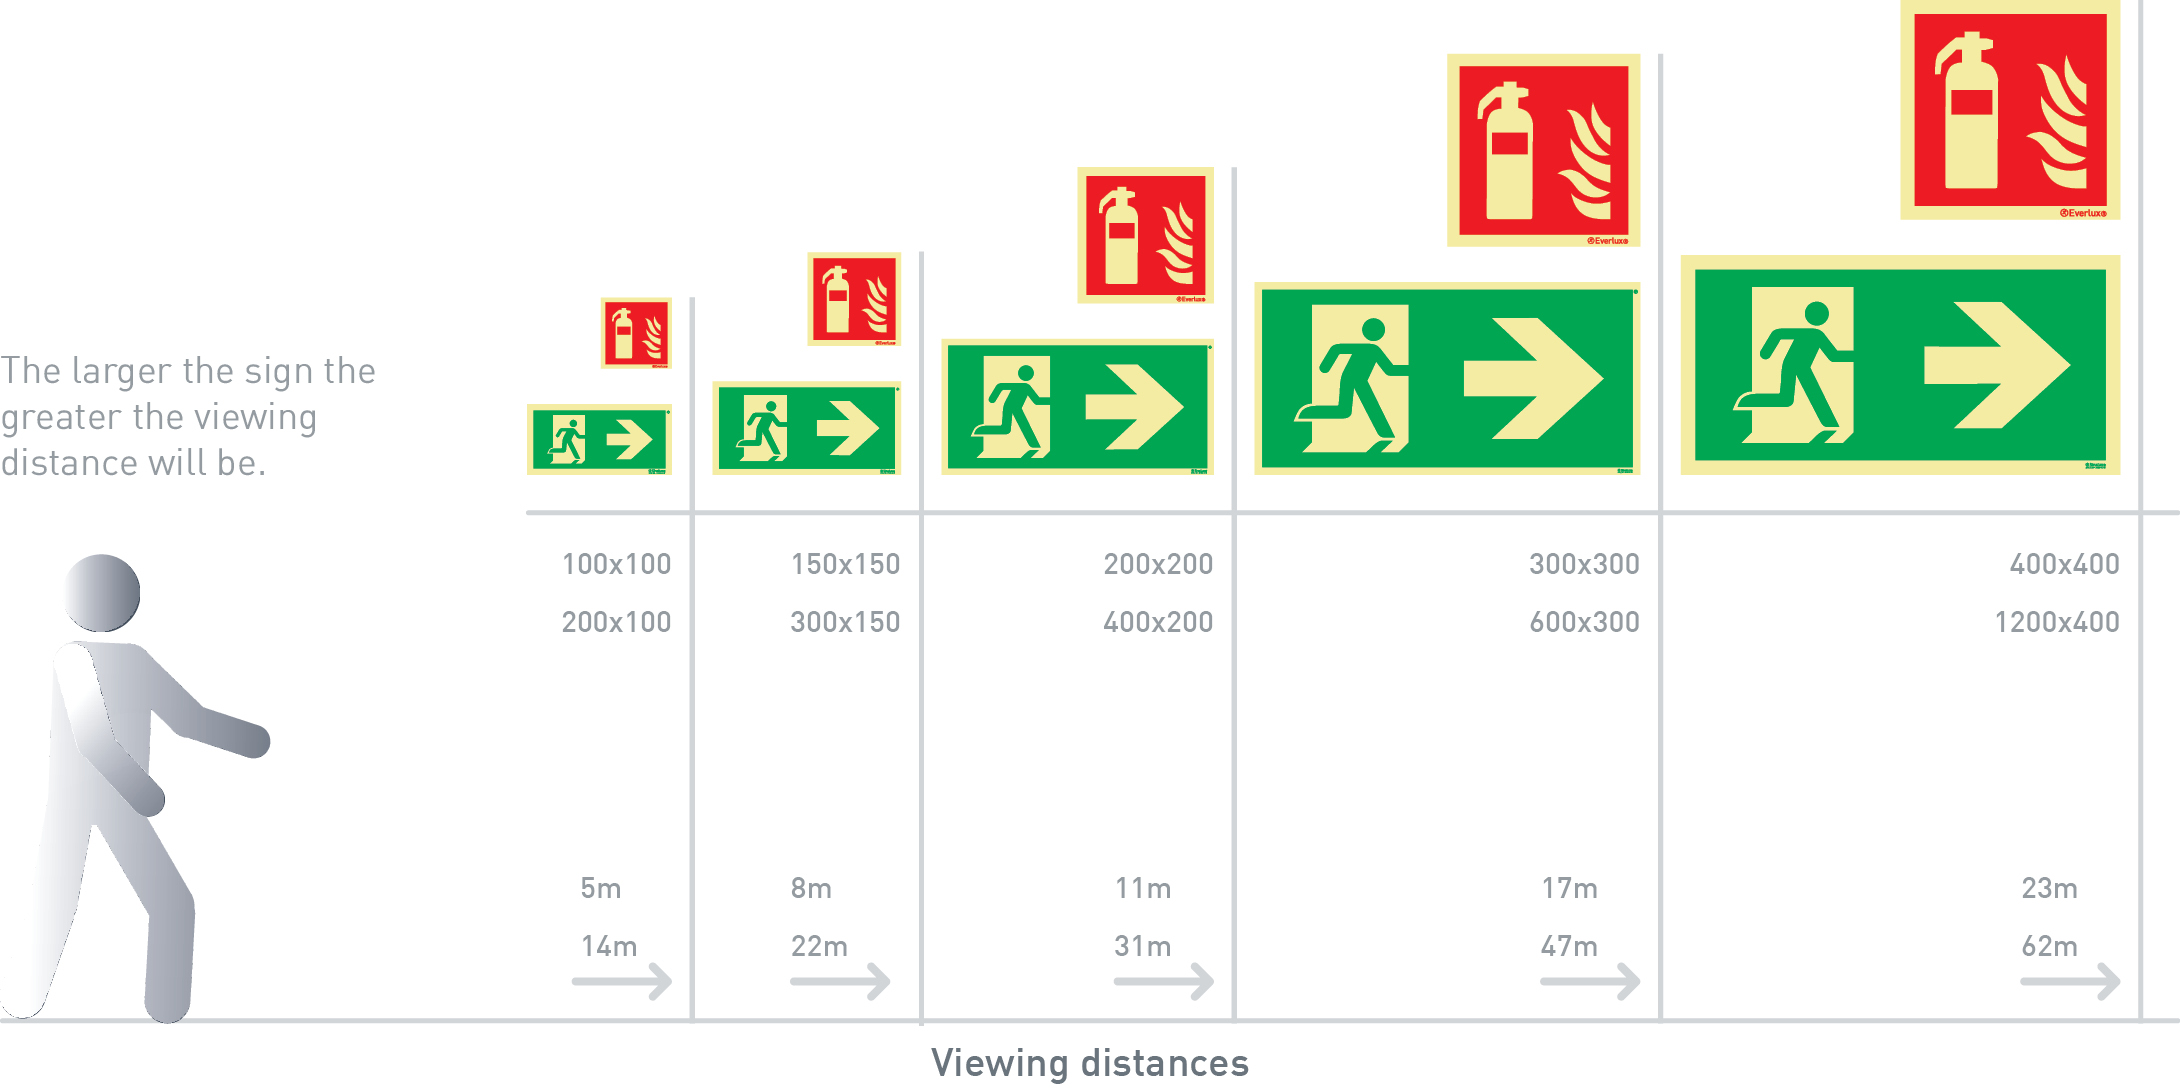 Viewing distances